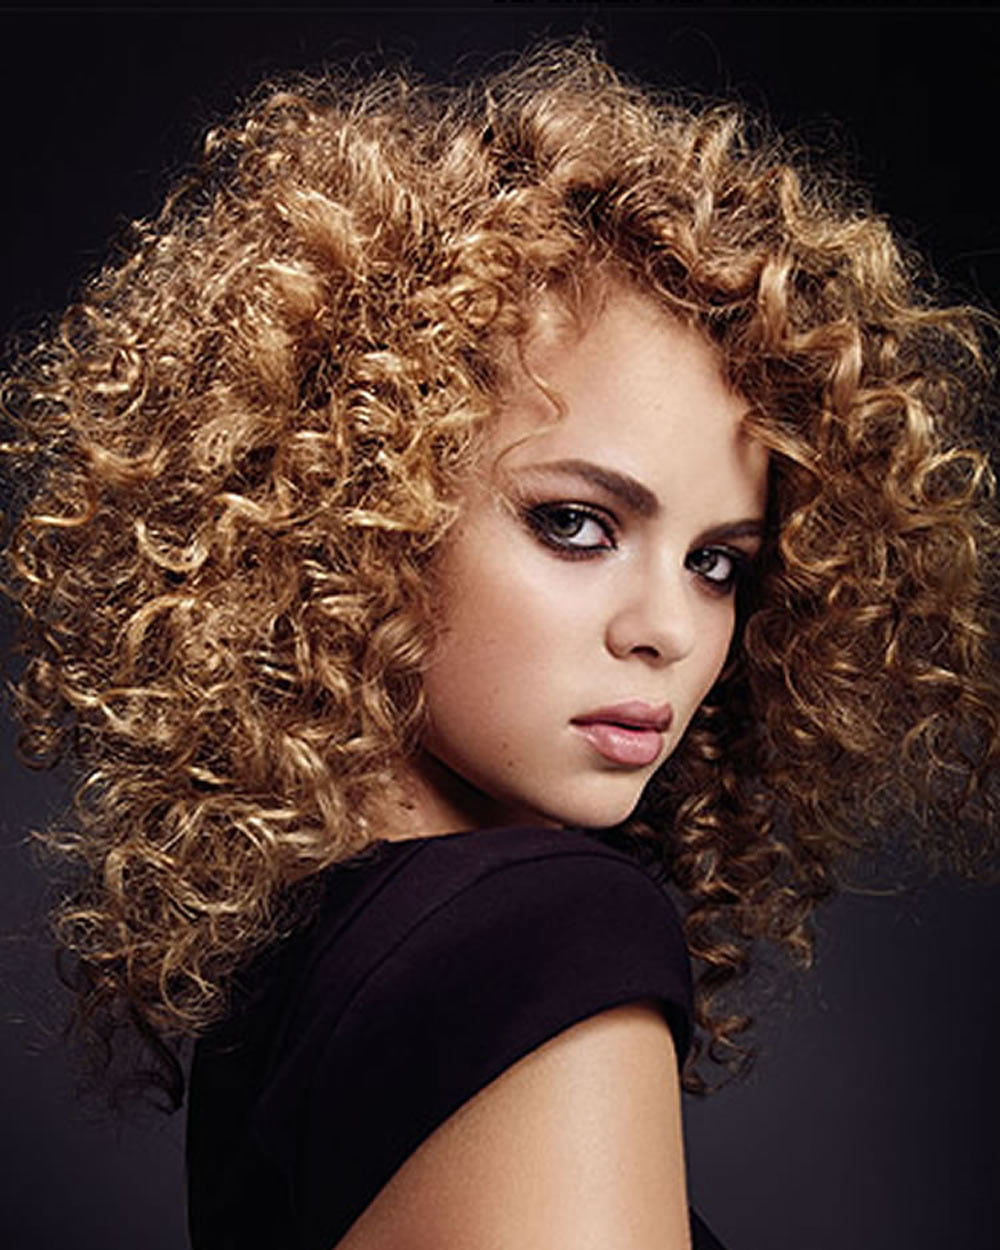 2018 Permed Hairstyles for Short Hair - Best 32 Curly Short Haircut - Page 2 - HAIRSTYLES